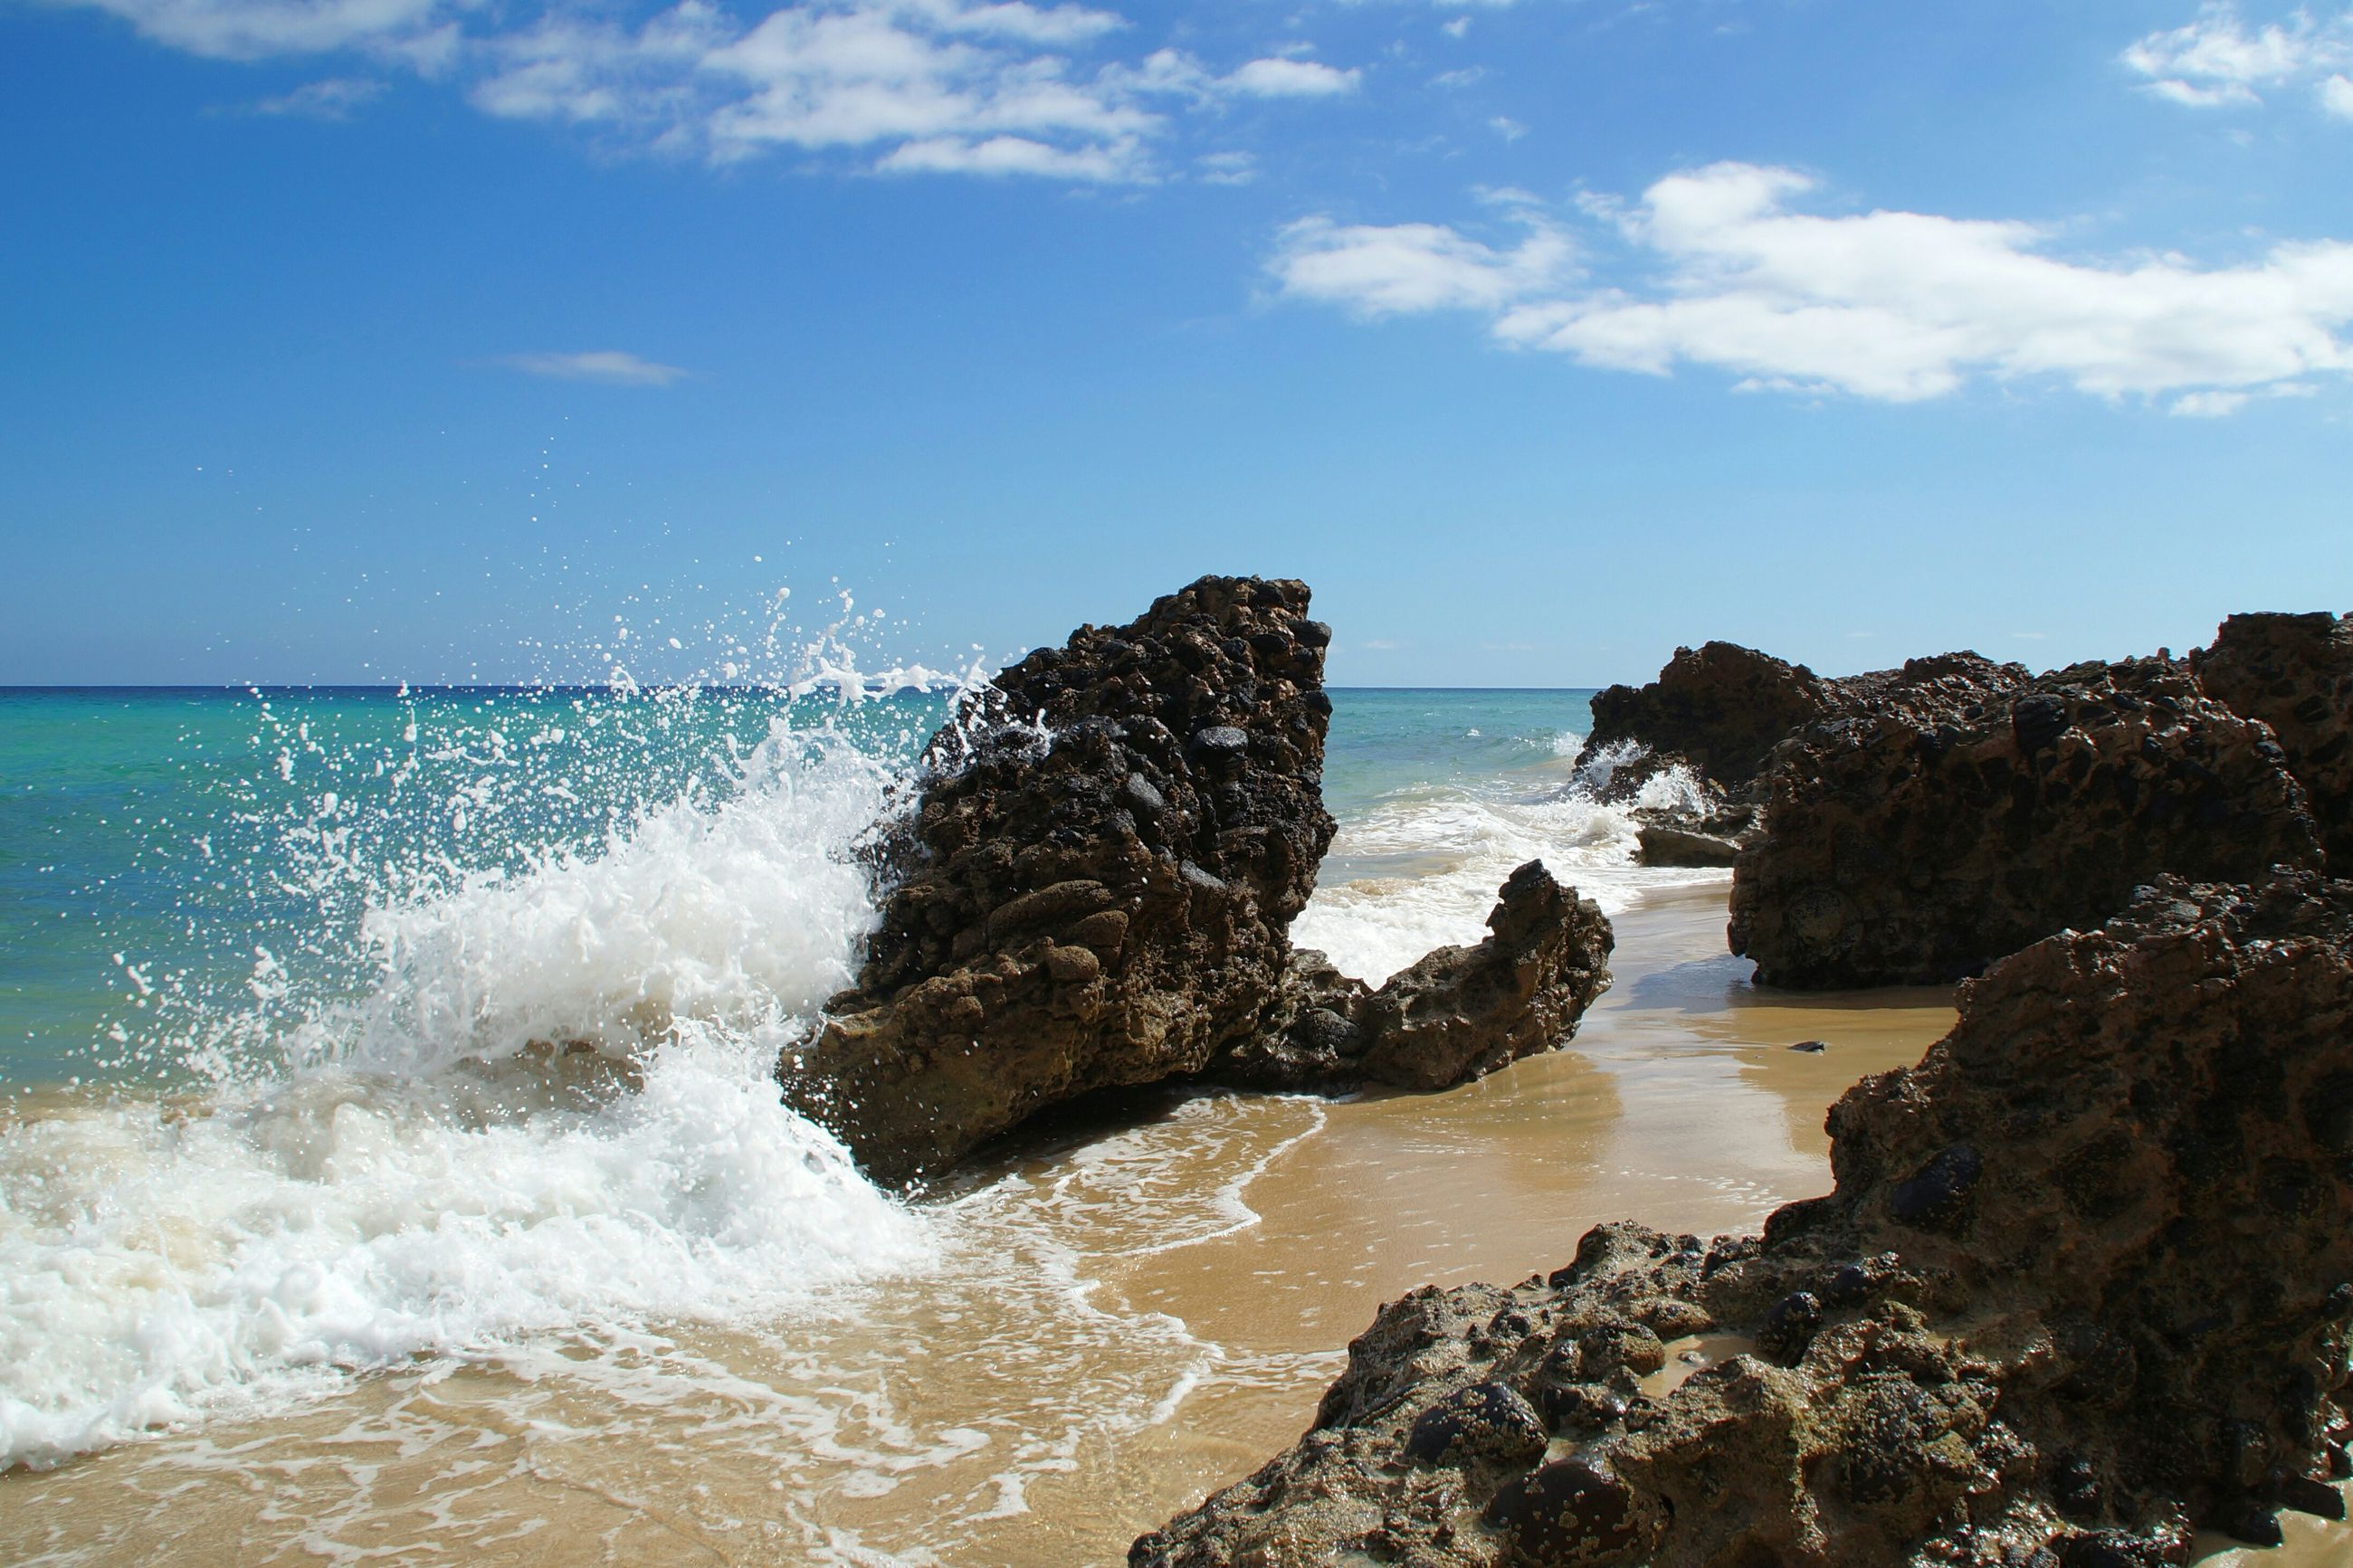 sea, water, horizon over water, sky, beach, scenics, beauty in nature, shore, rock - object, wave, tranquility, tranquil scene, nature, blue, surf, cloud - sky, idyllic, day, splashing, rock formation